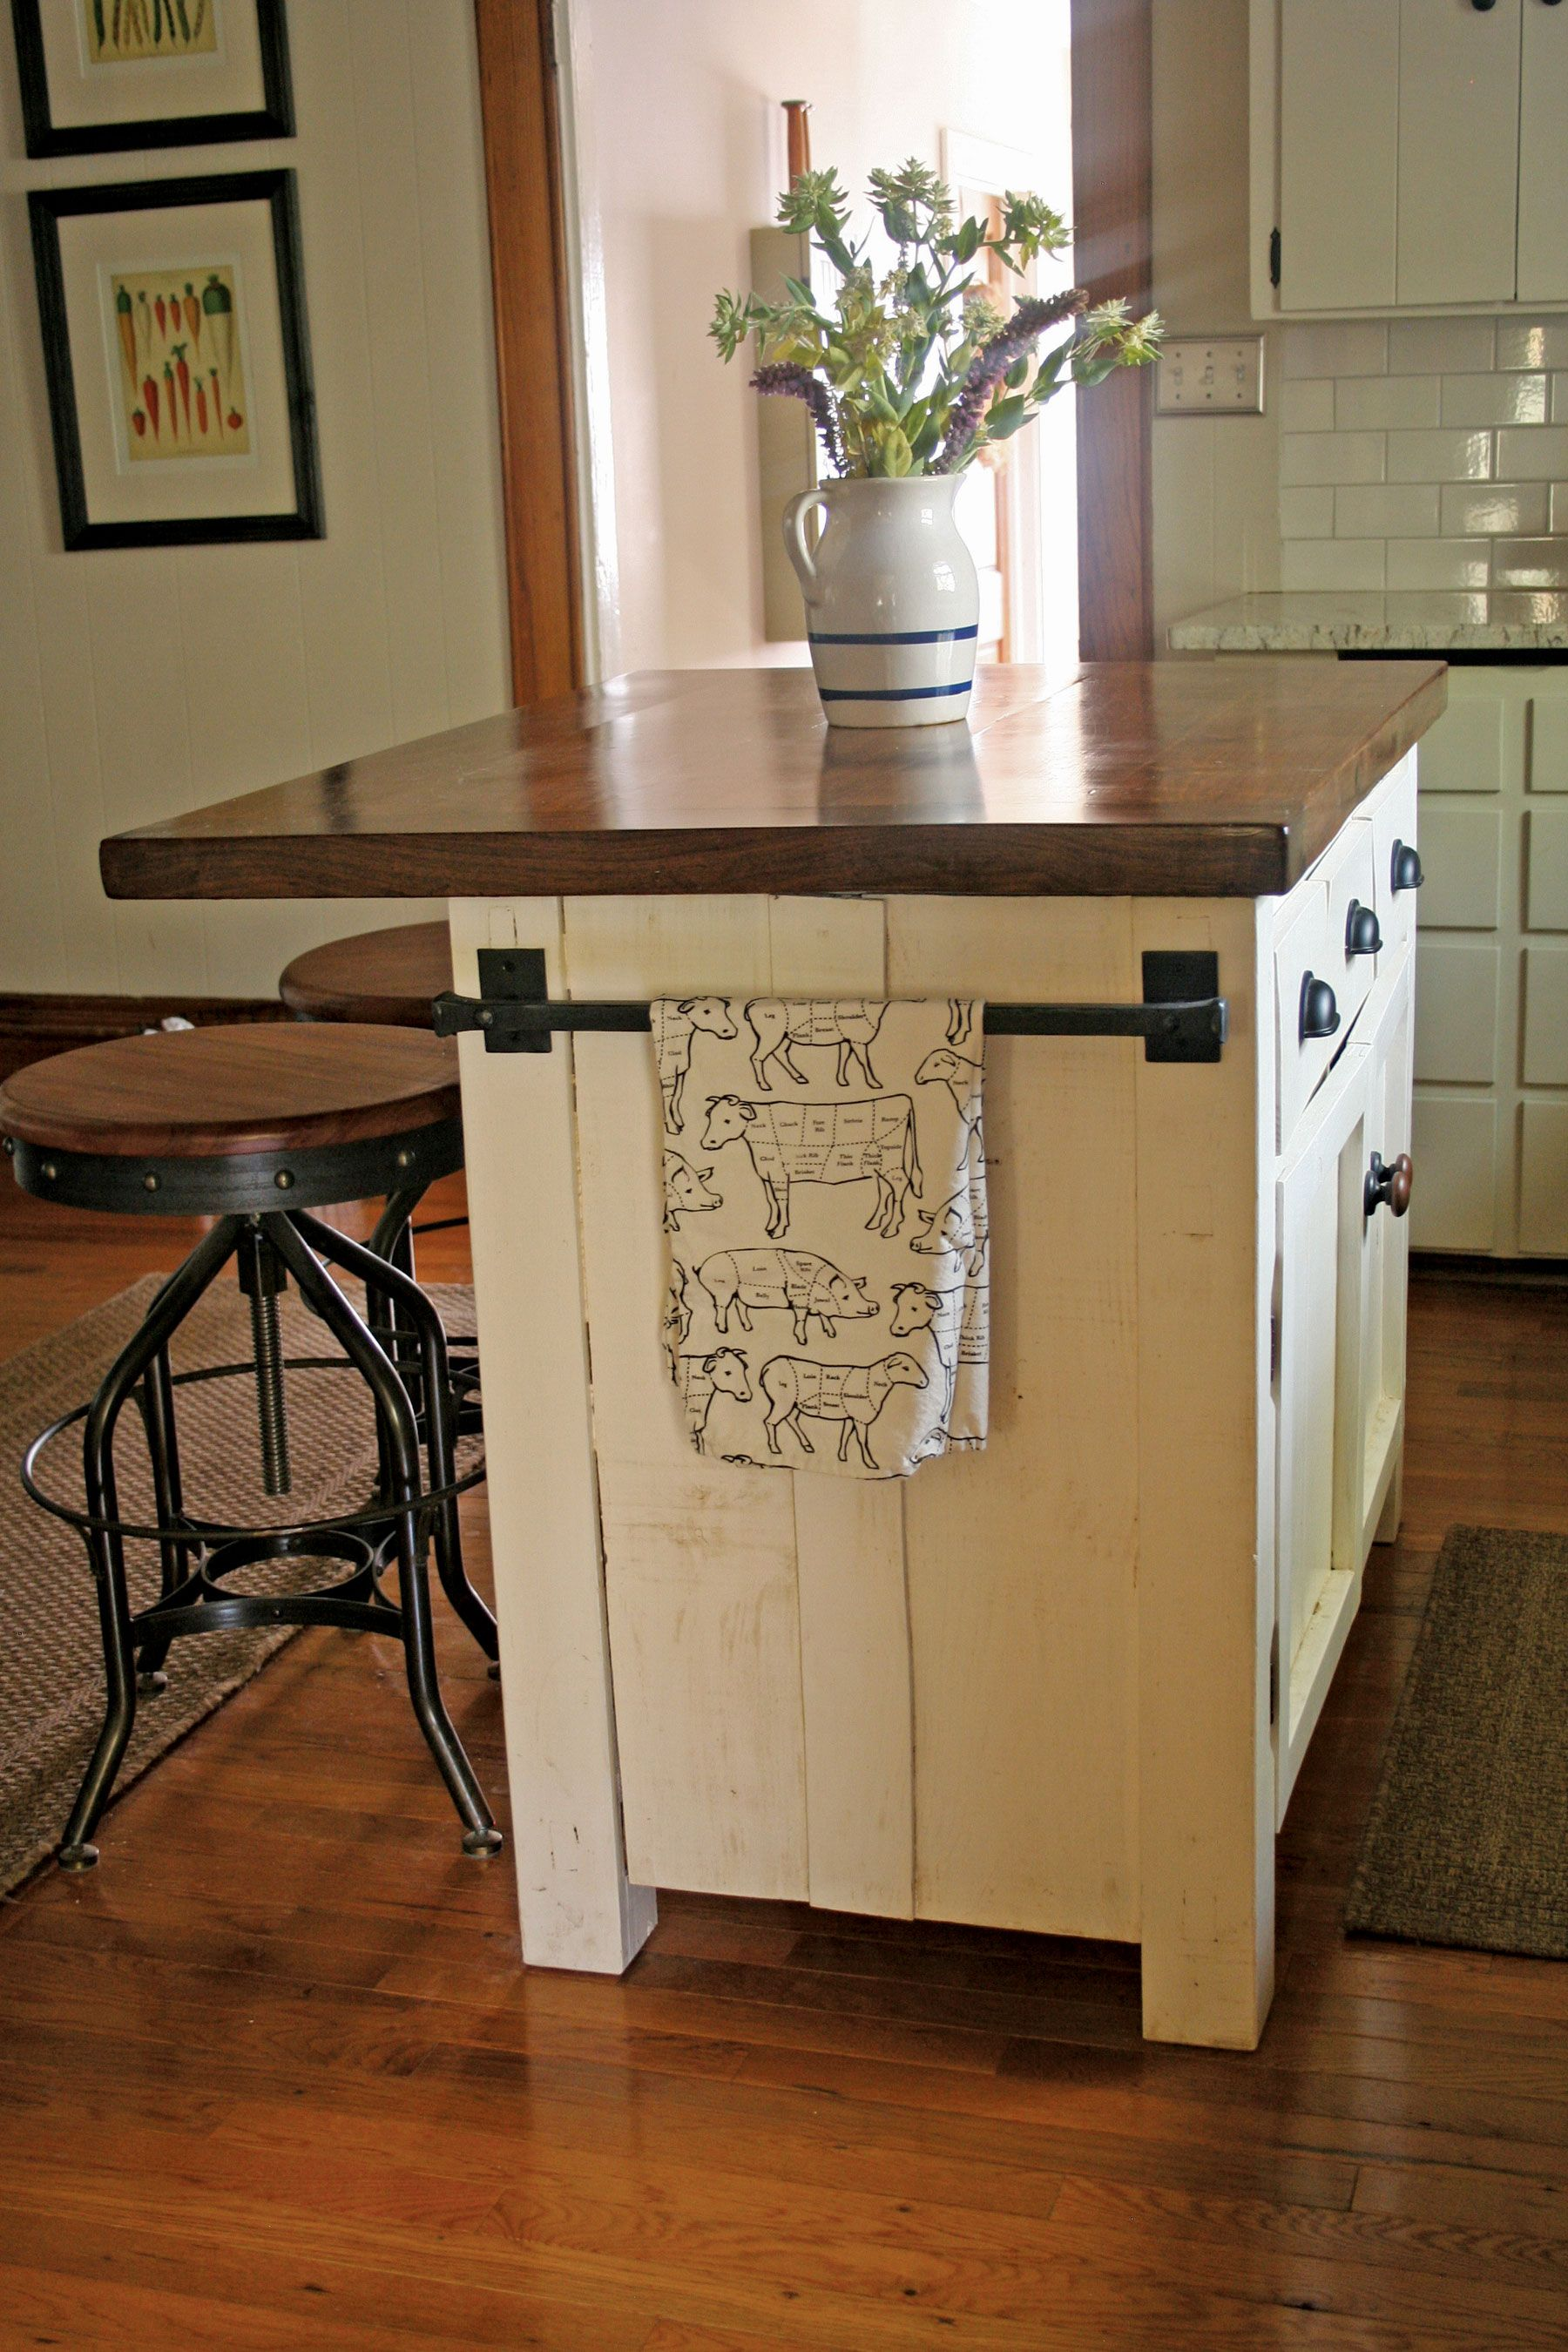 Diy Kitchen Island Plans kitchen diy island bar basic breakfast base | eiforces with diy